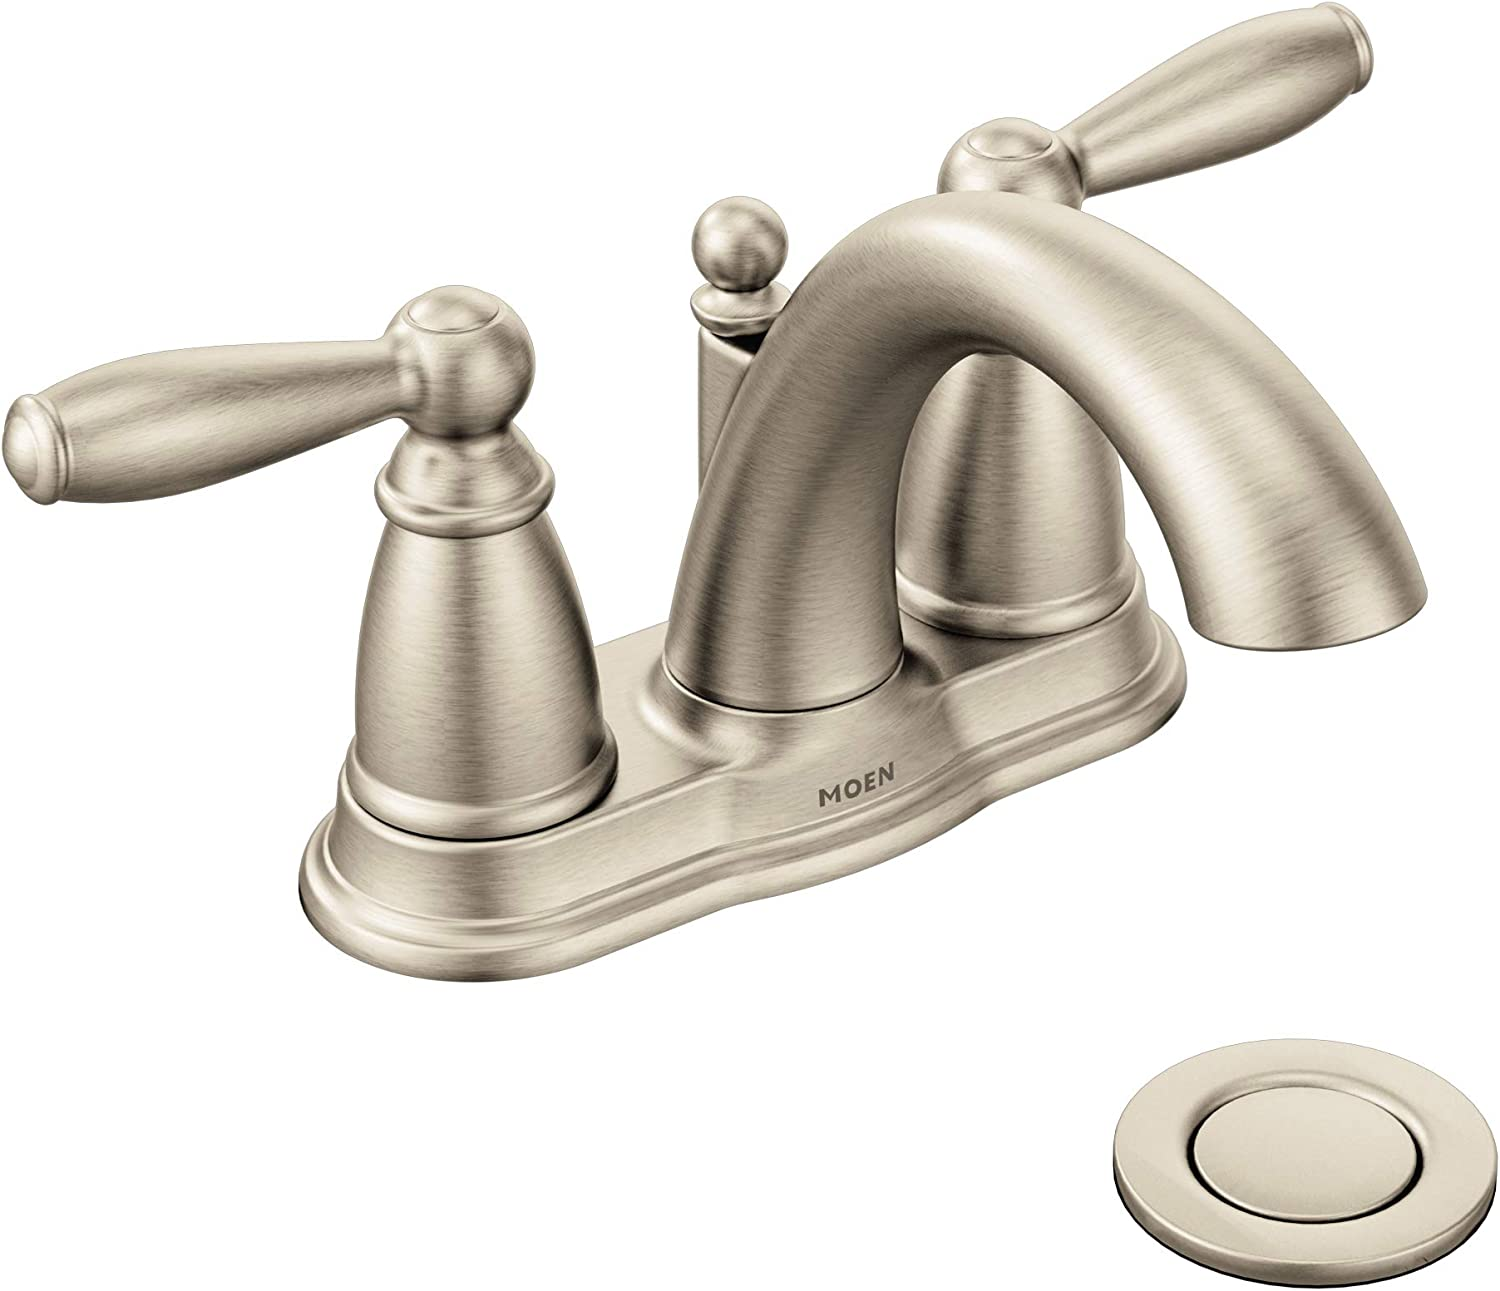 Moen 6610BN Brantford Two-Handle Centerset Bathroom Low-Arc Cheap mail Topics on TV order sales Fauc